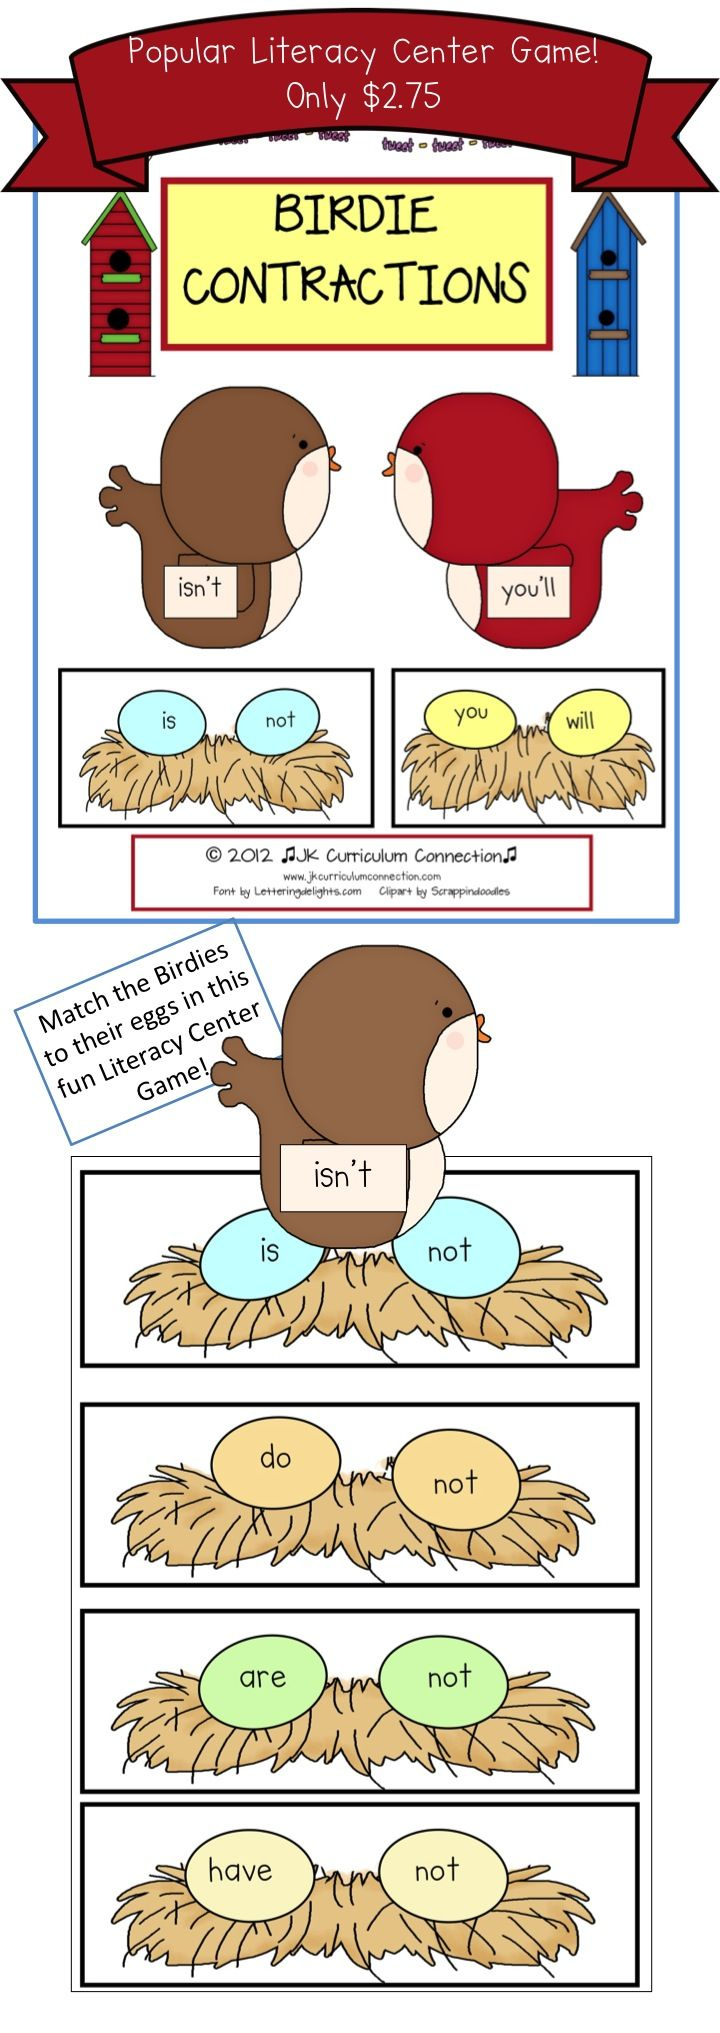 Birdie Contractions for Literacy Centers offers a variety of ways to use these adorable birds and nests to teach 20 contractions.  Colorful Display chart  and  2  Student worksheets included. $2.75http://www.teacherspayteachers.com/Product/Contraction-Game-Birdie-Contractions-Game-for-Literacy-Centers-227324